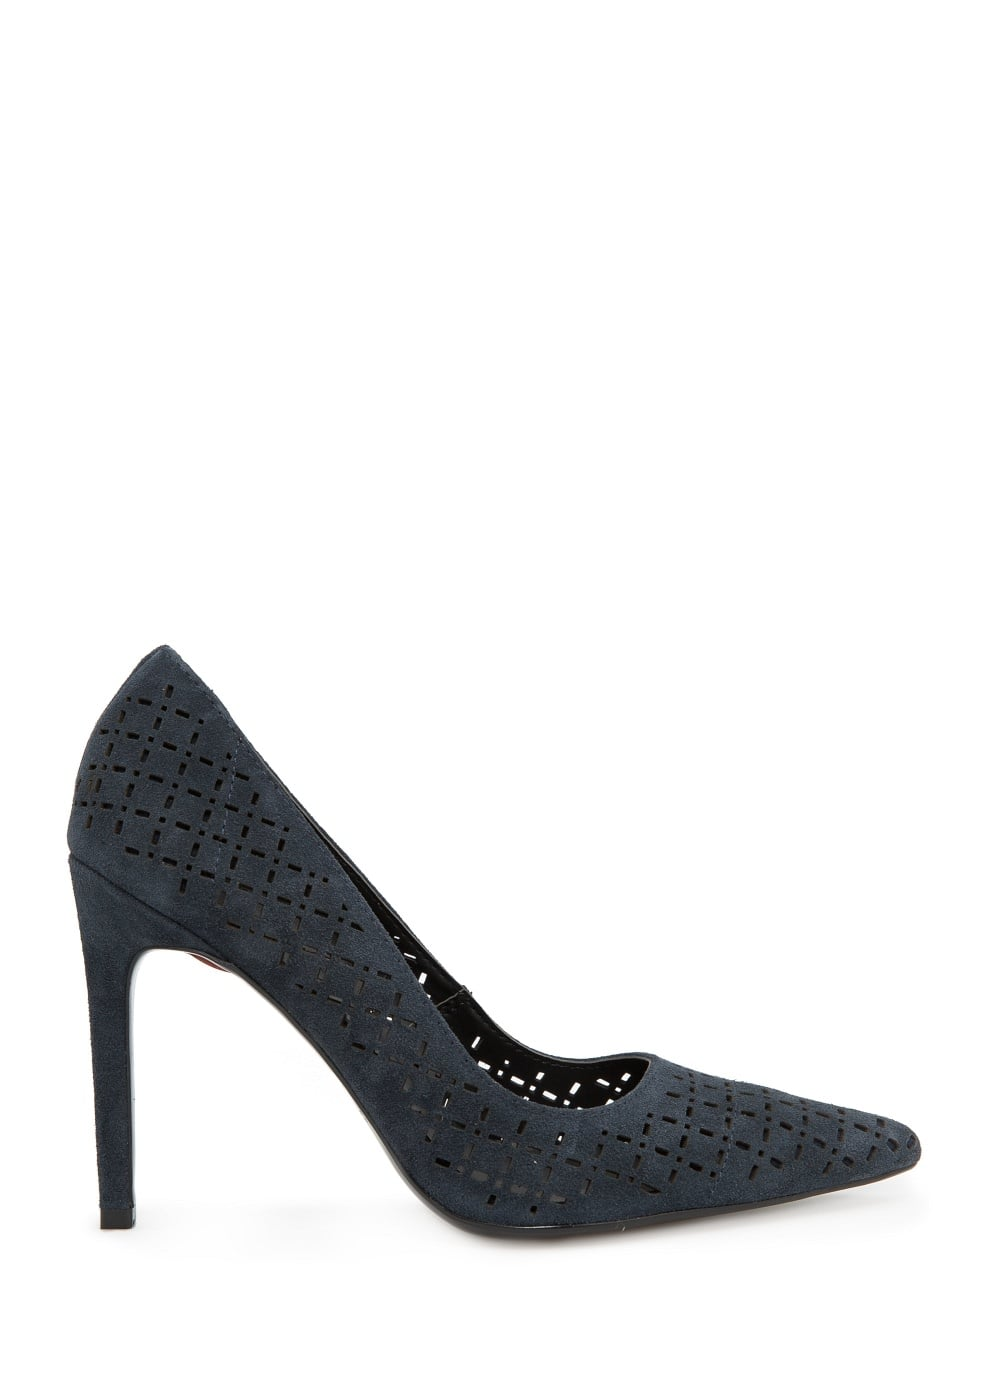 Laser-cut suede pumps